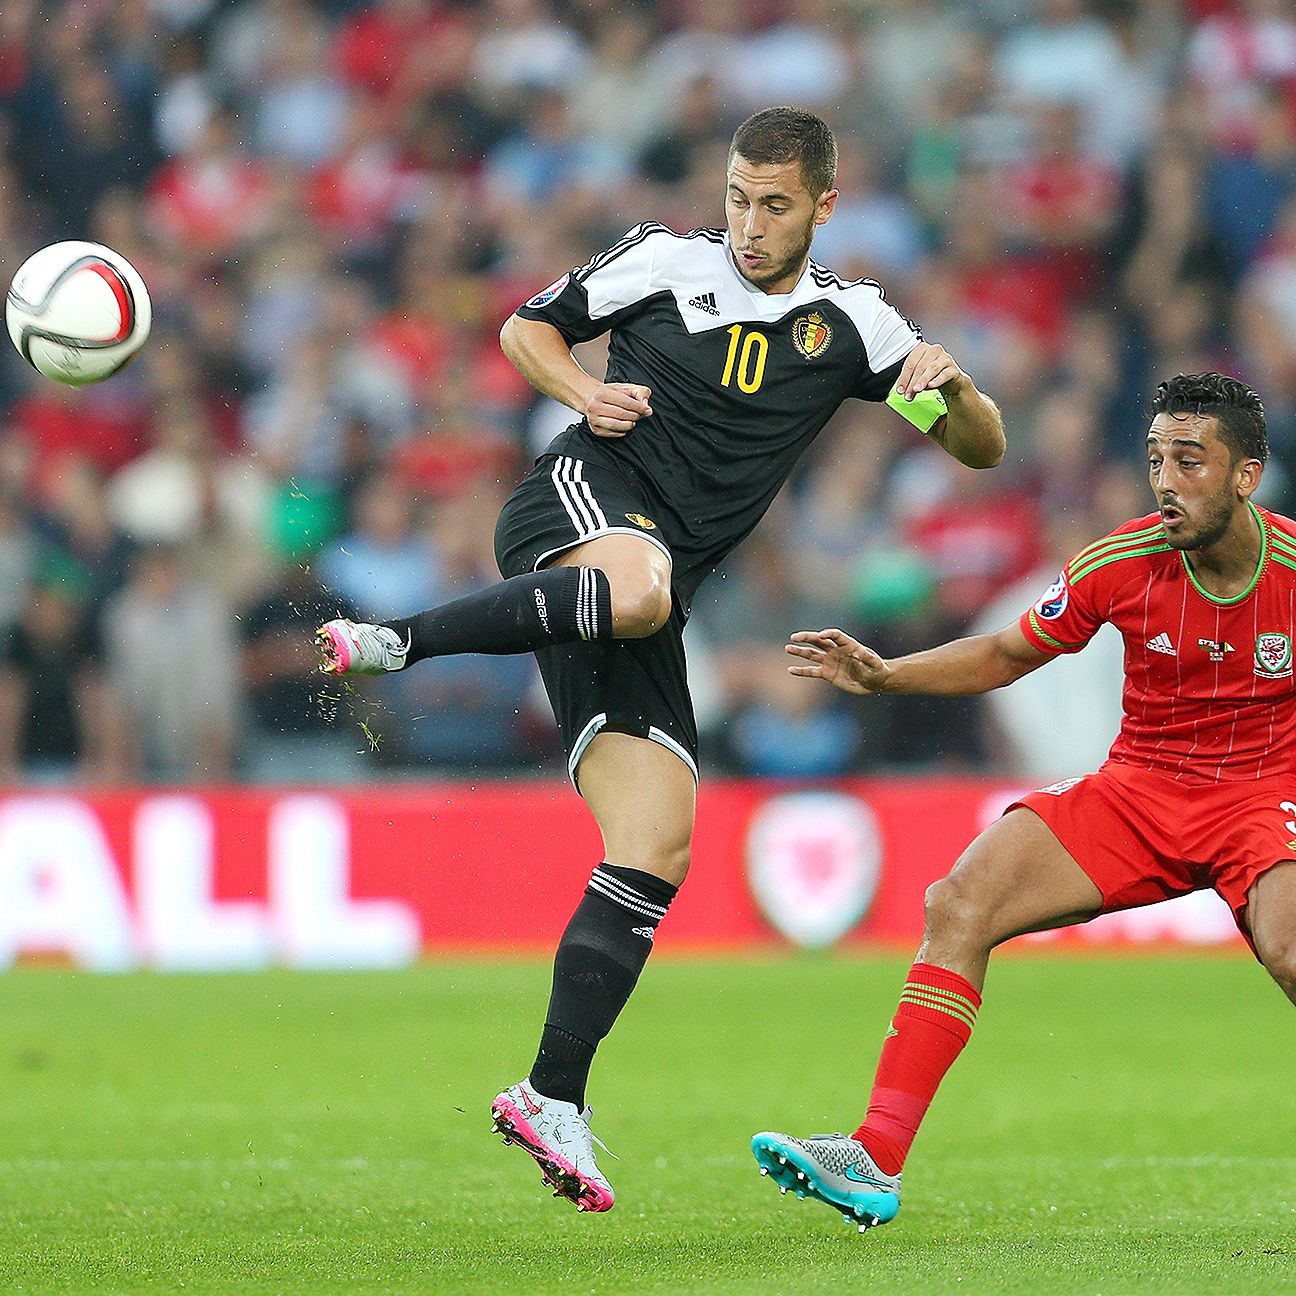 Despite all their firepower, Eden Hazard and Belgium were unable to breach the sturdy Welsh defence.